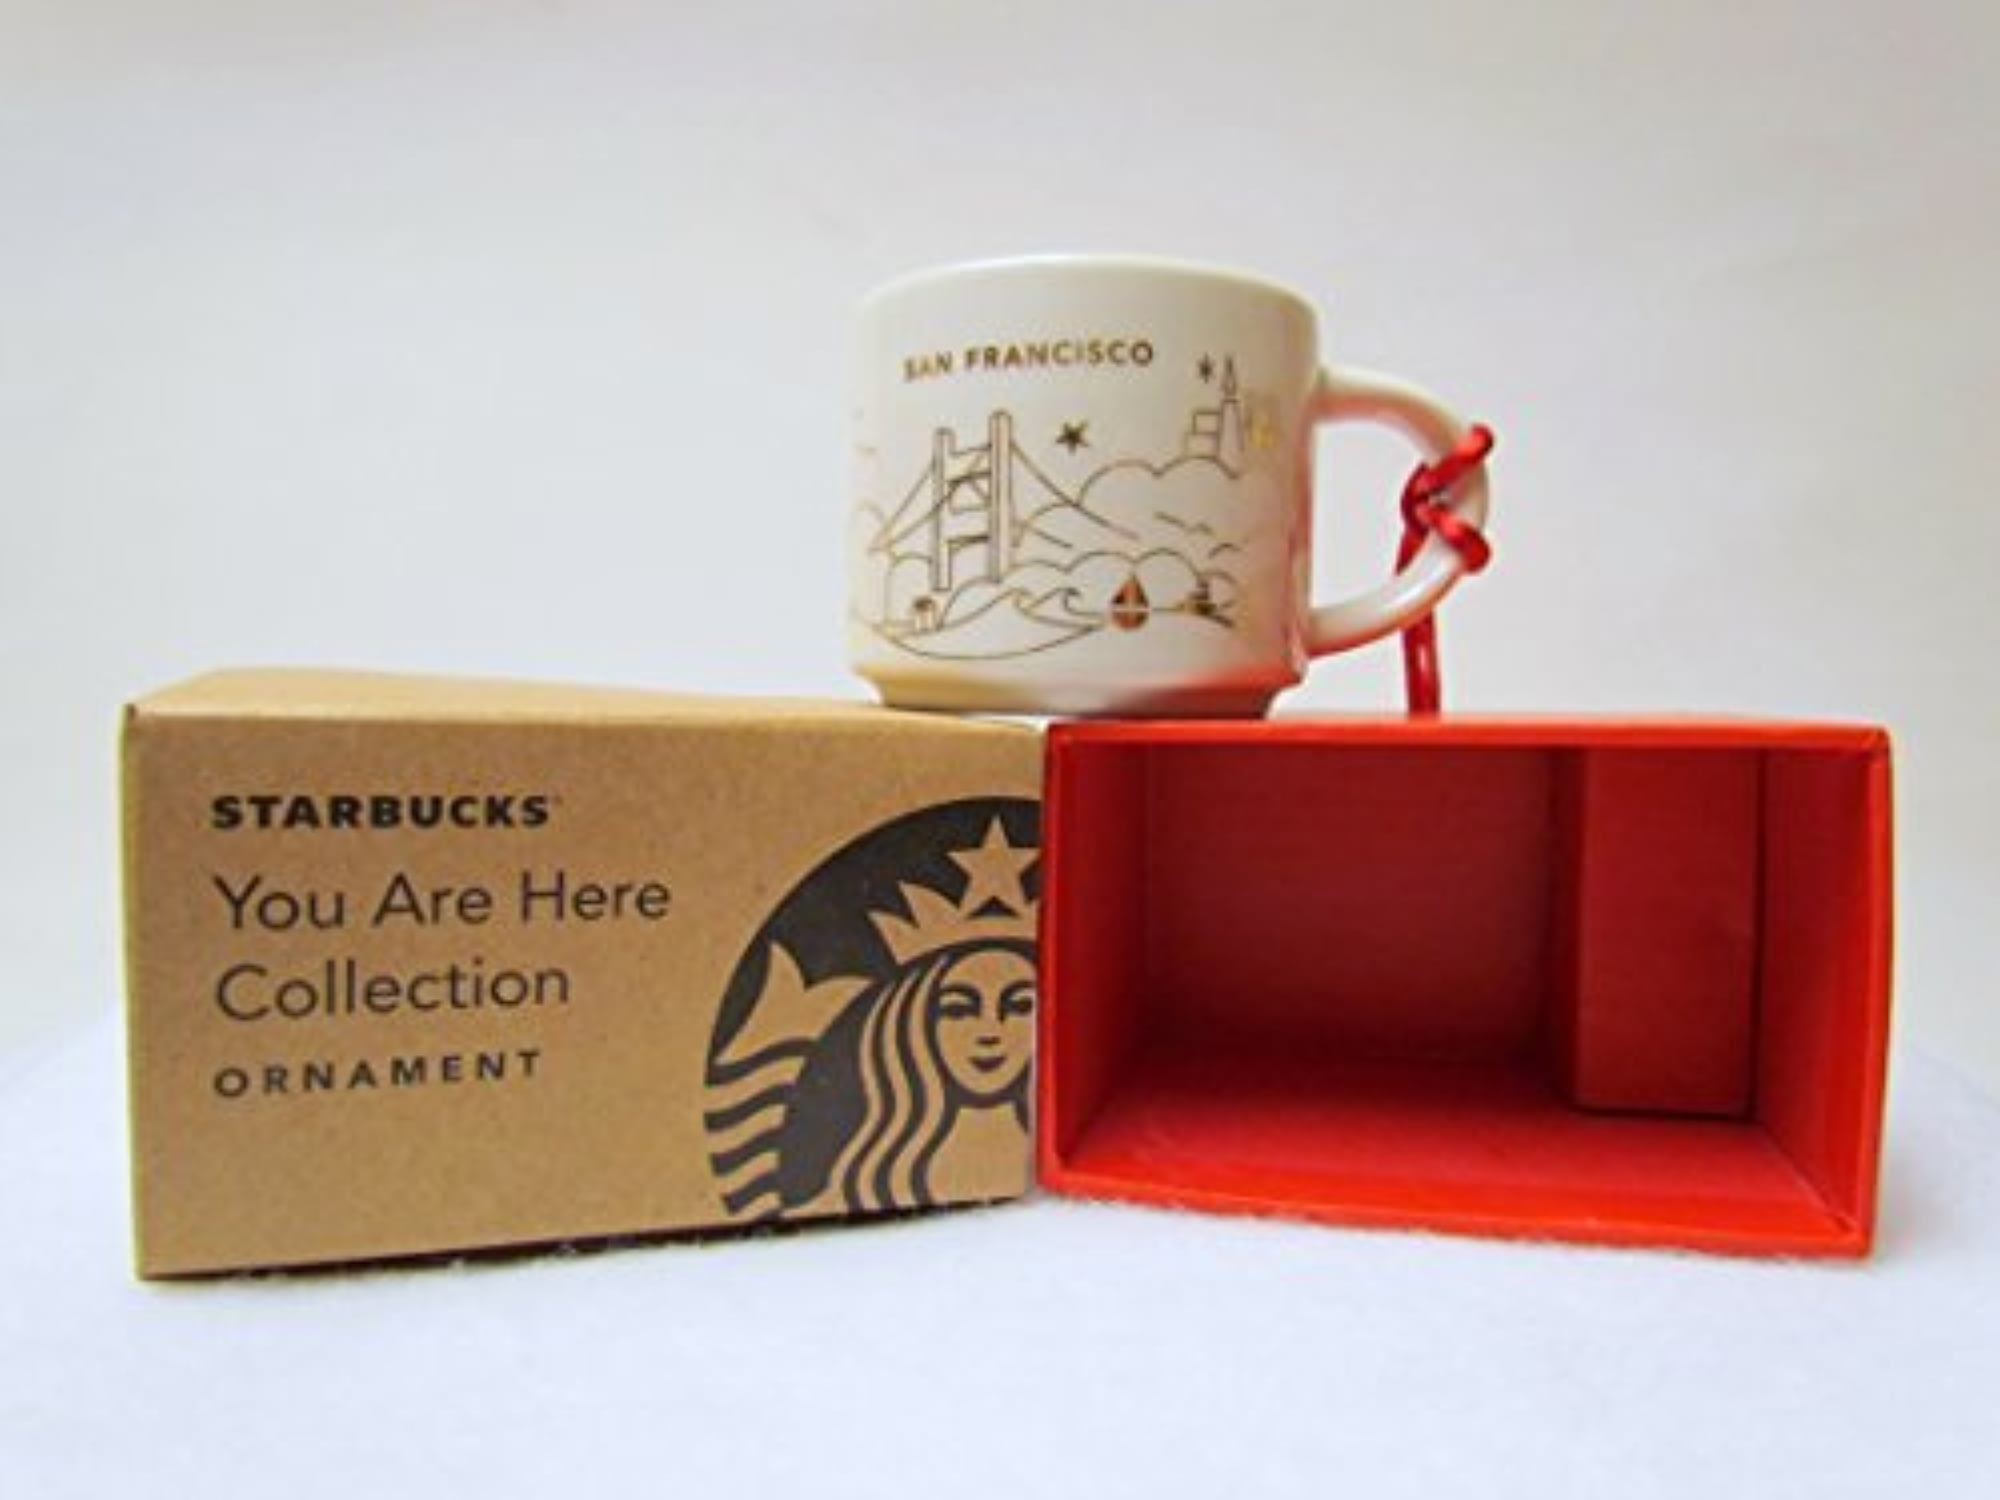 Starbucks San Francisco You Are Here Collection OrnaHommest by You Are Here Collection OrnaHommest